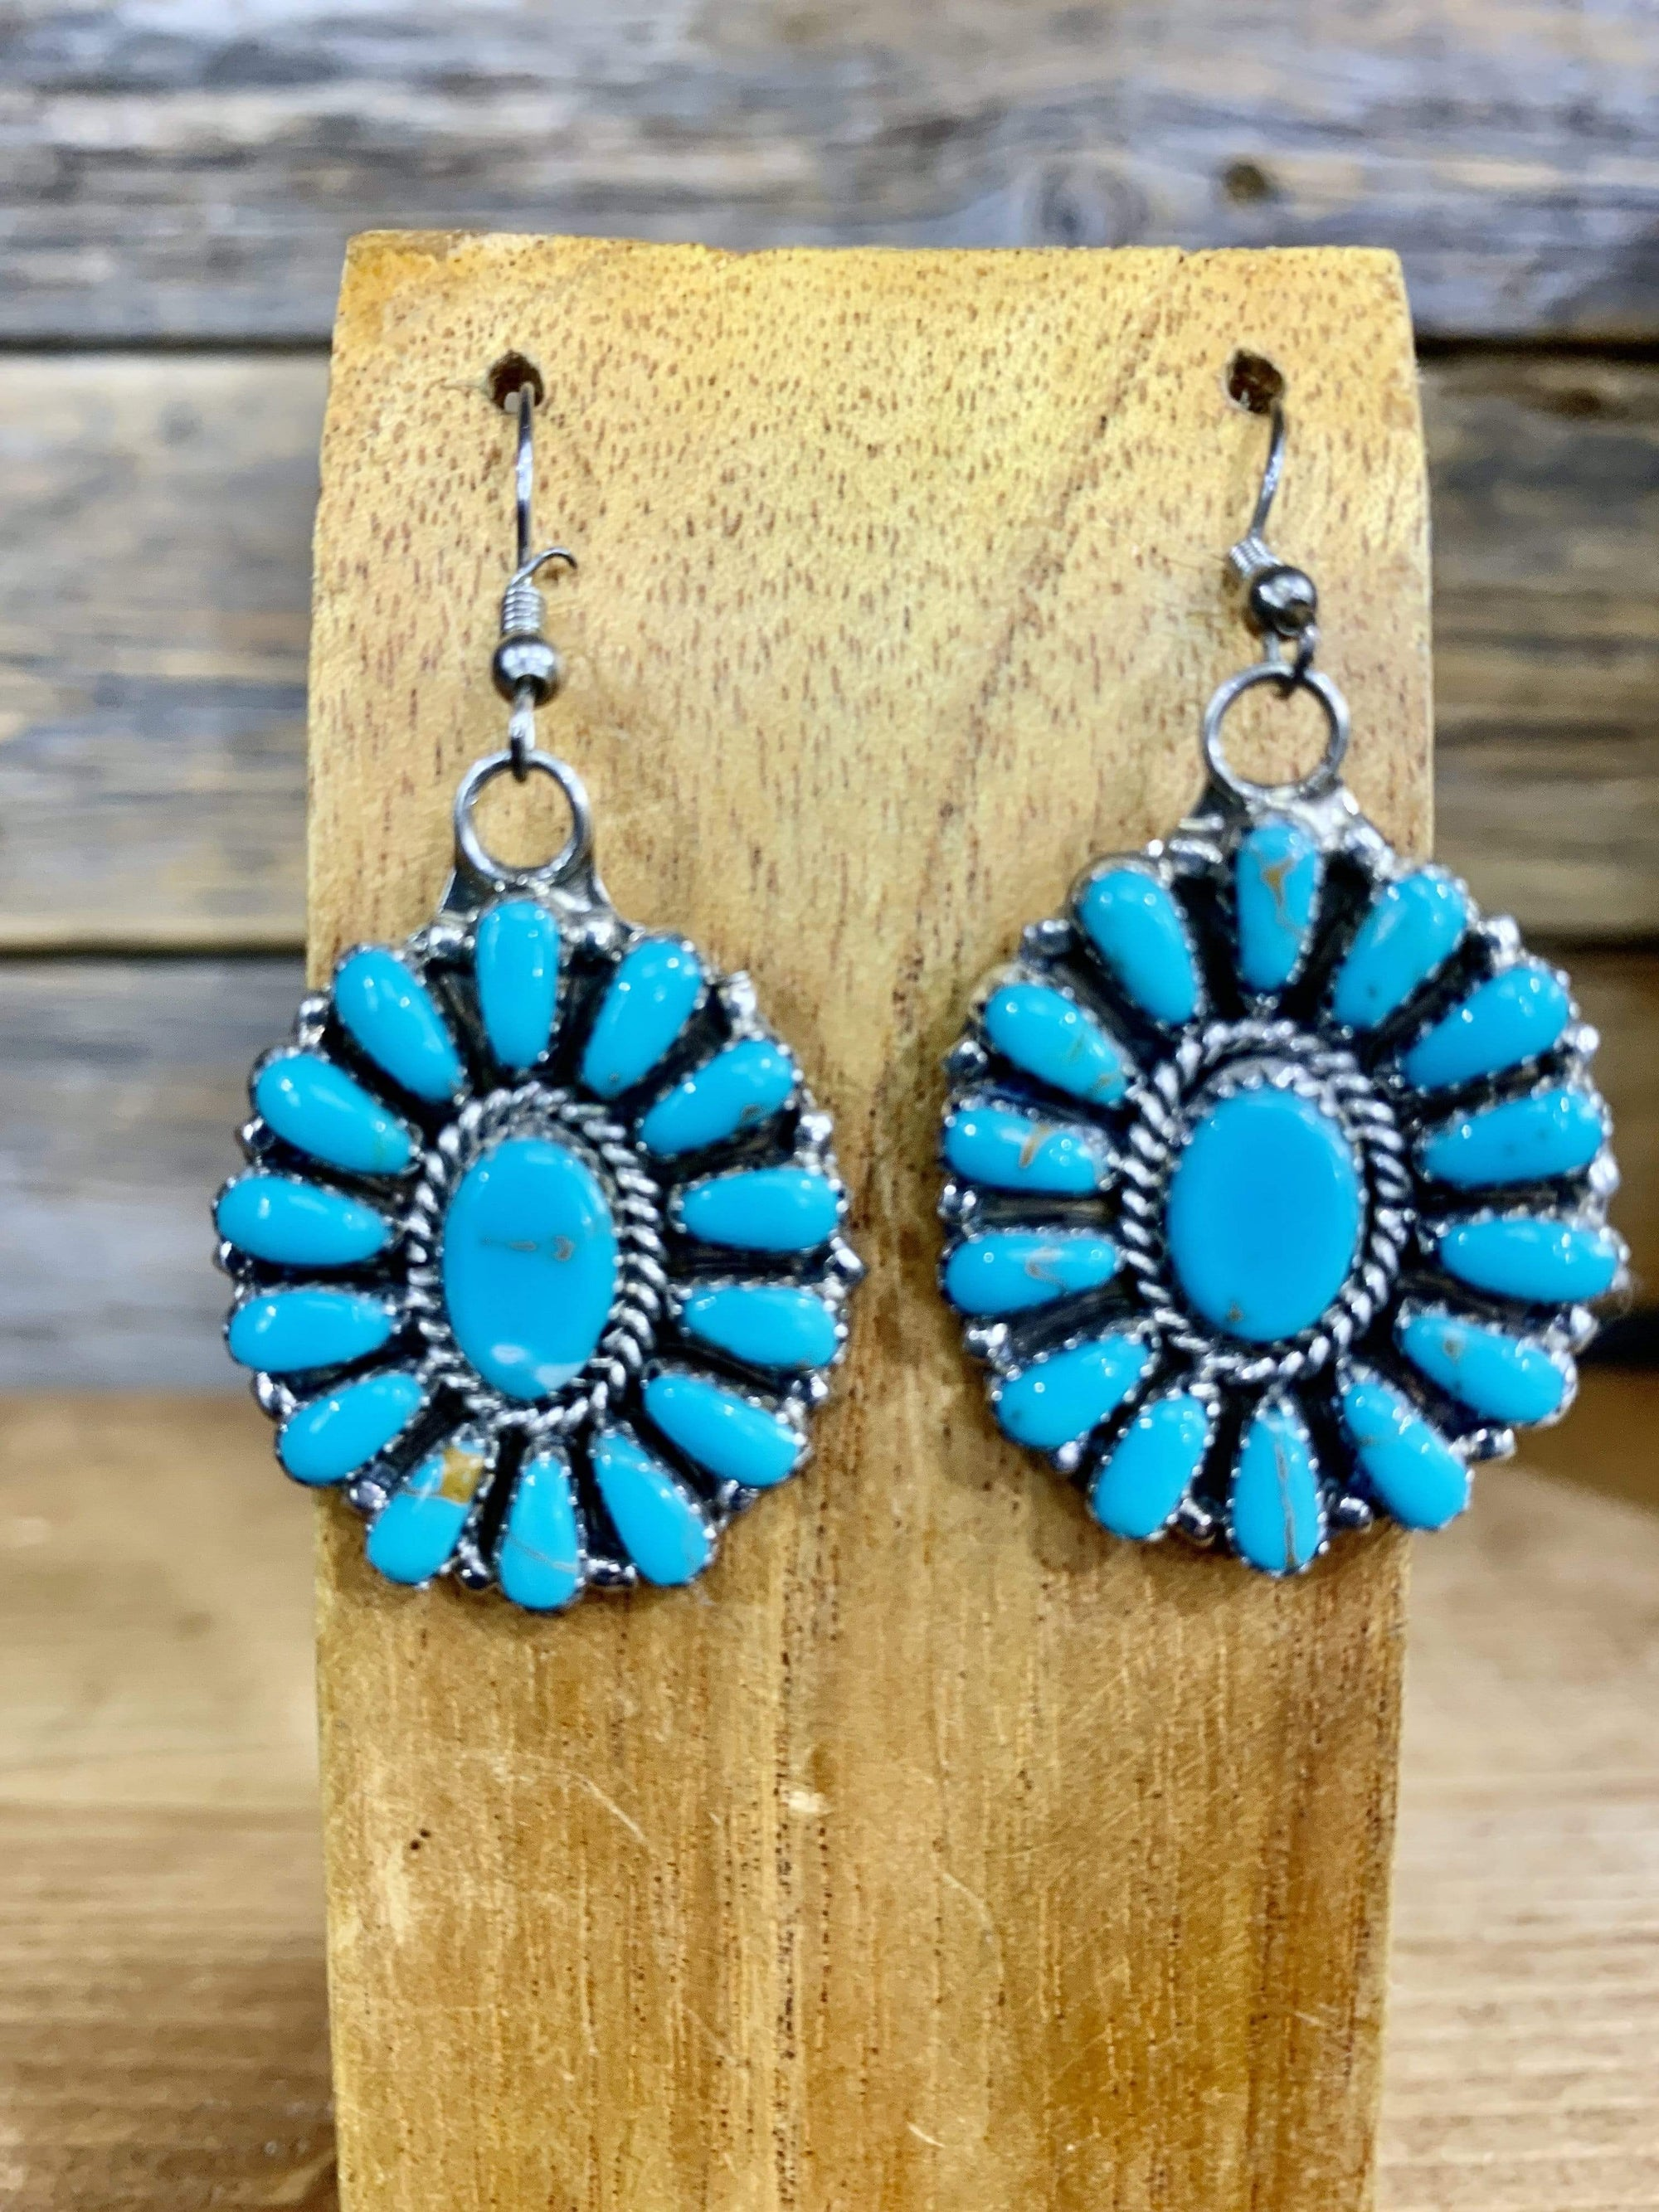 Accessorize In Style Sterling Earrings Oval Turquoise & Sterling Cluster Earrings